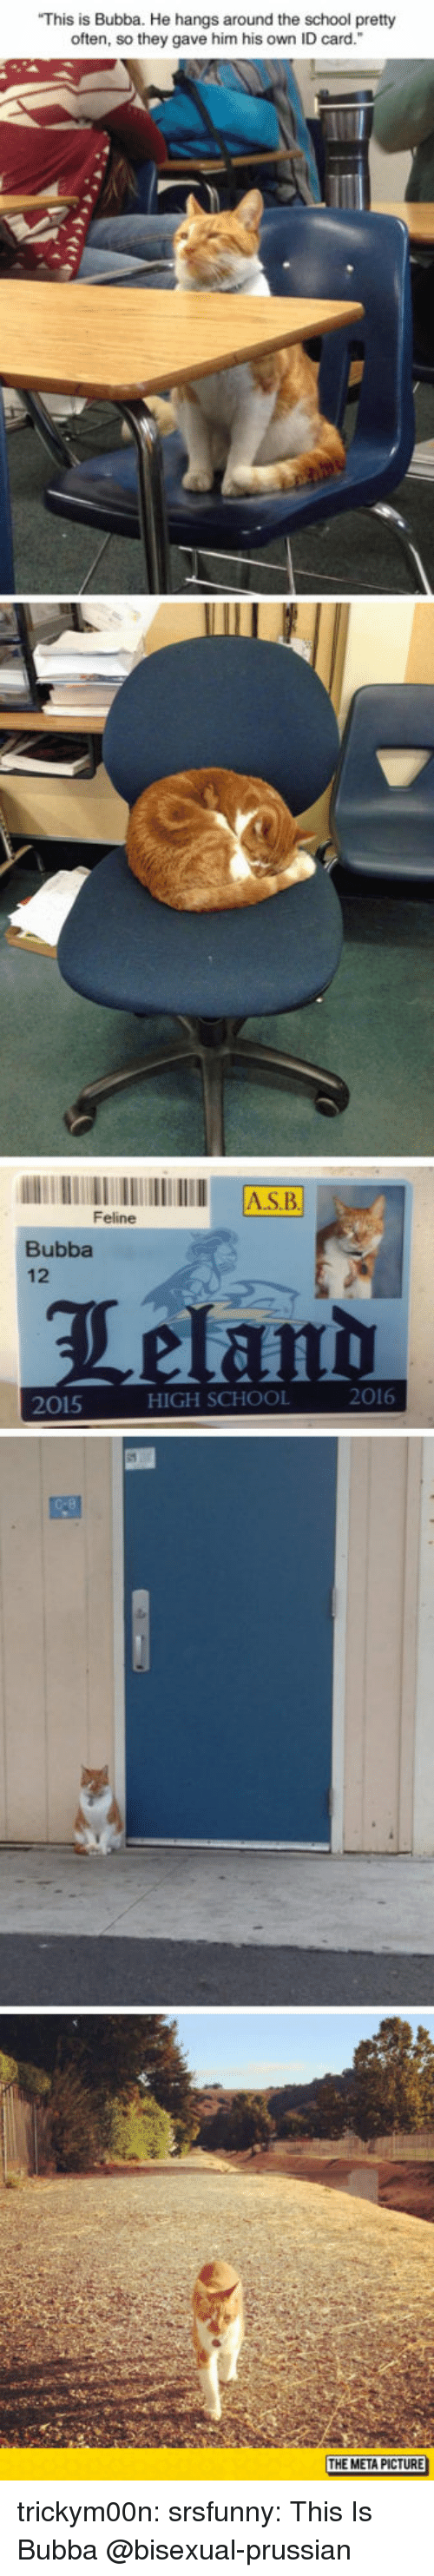 "Bubba: This is Bubba. He hangs around the school pretty  often, so they gave him his own ID card.""  AS.B  Feline  Bubba  12  2016  2015  HIGH SCHOOL  THE META PICTURE trickym00n:  srsfunny:  This Is Bubba  @bisexual-prussian"